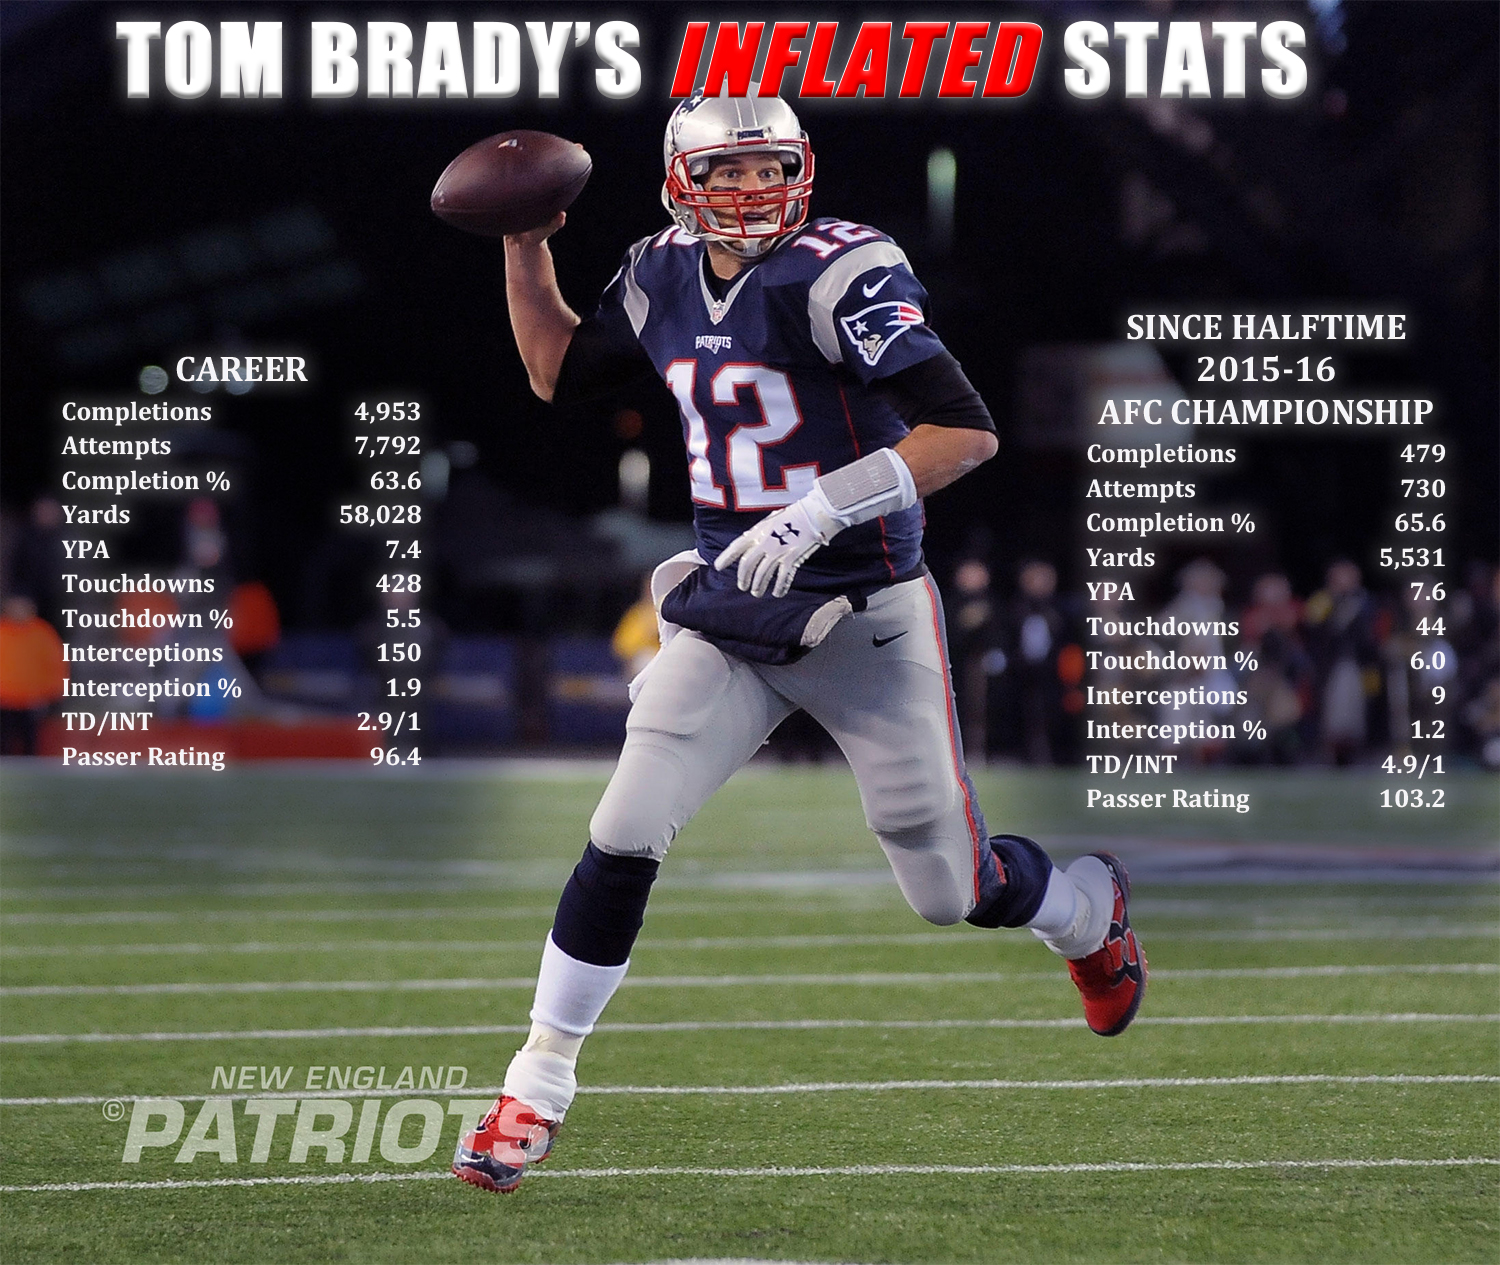 BradysInflatedStatsDivRound